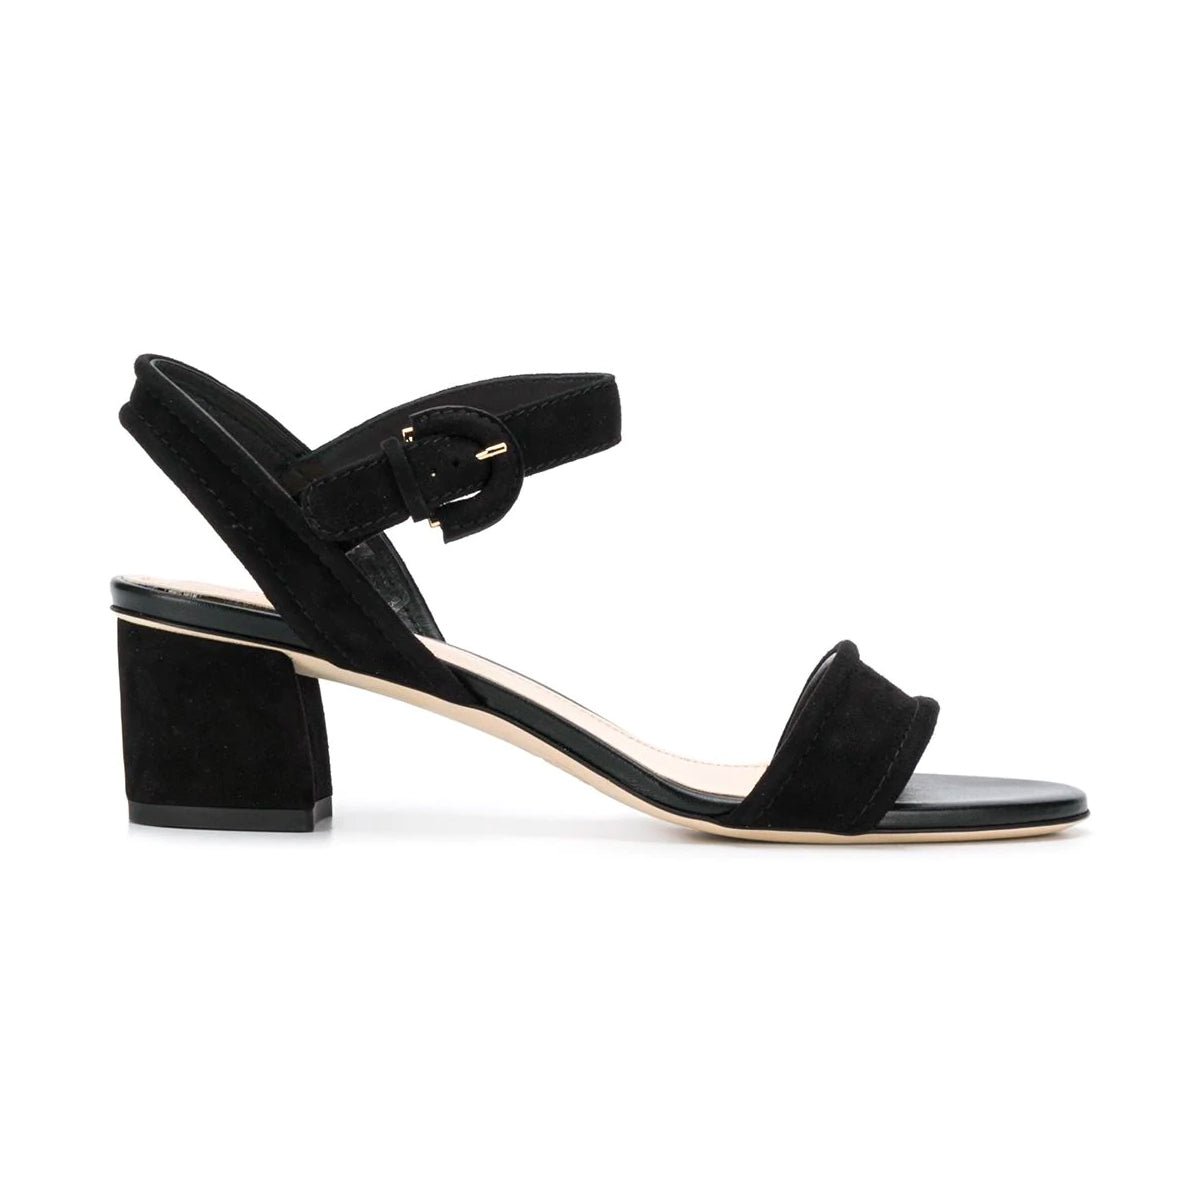 Suede Mid Heel Simple Block Heel Sandals